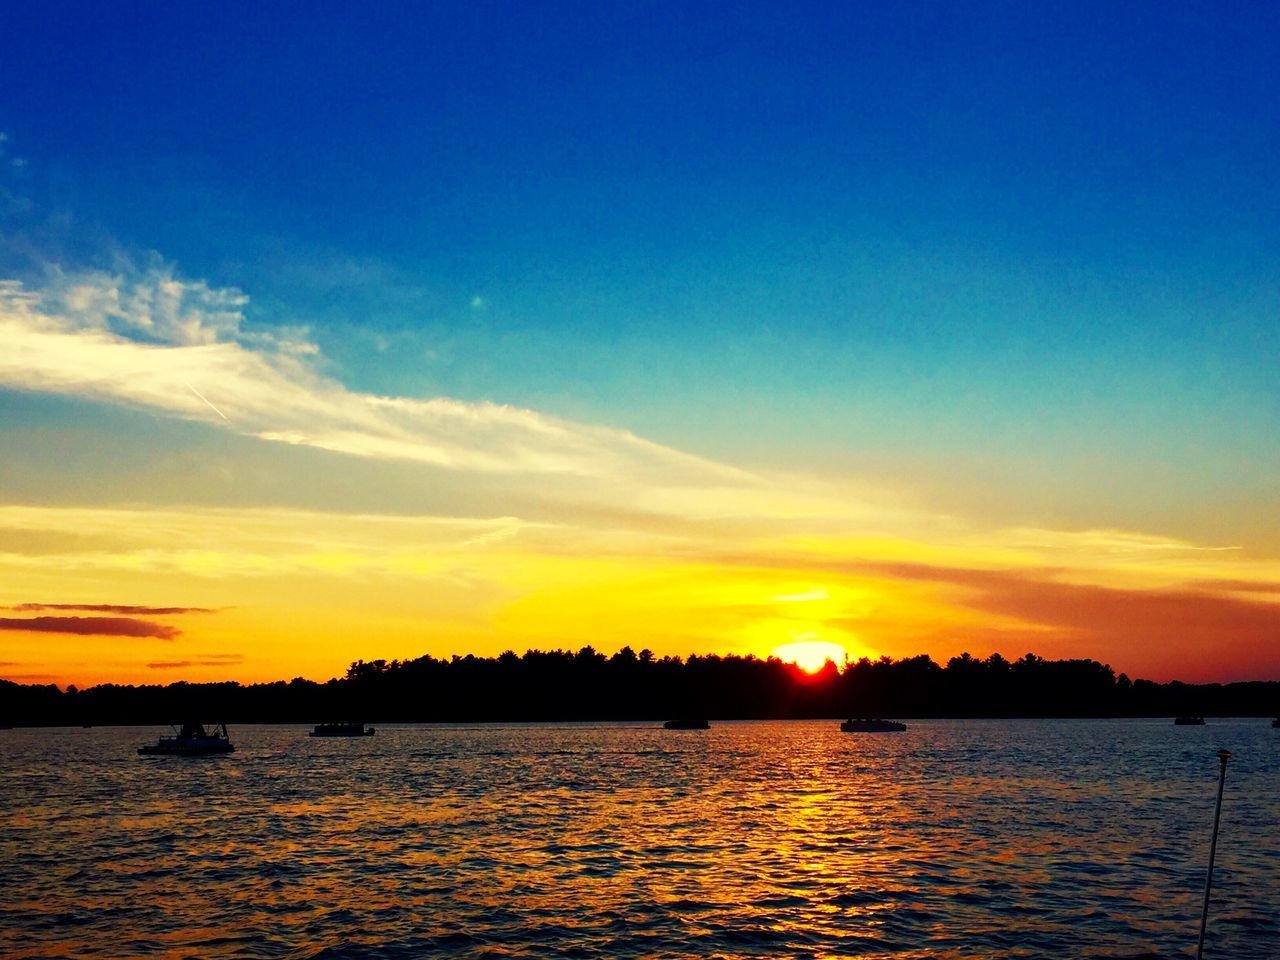 Calm Water Calm Water Sunset Boats Lake View Lake River Scenery